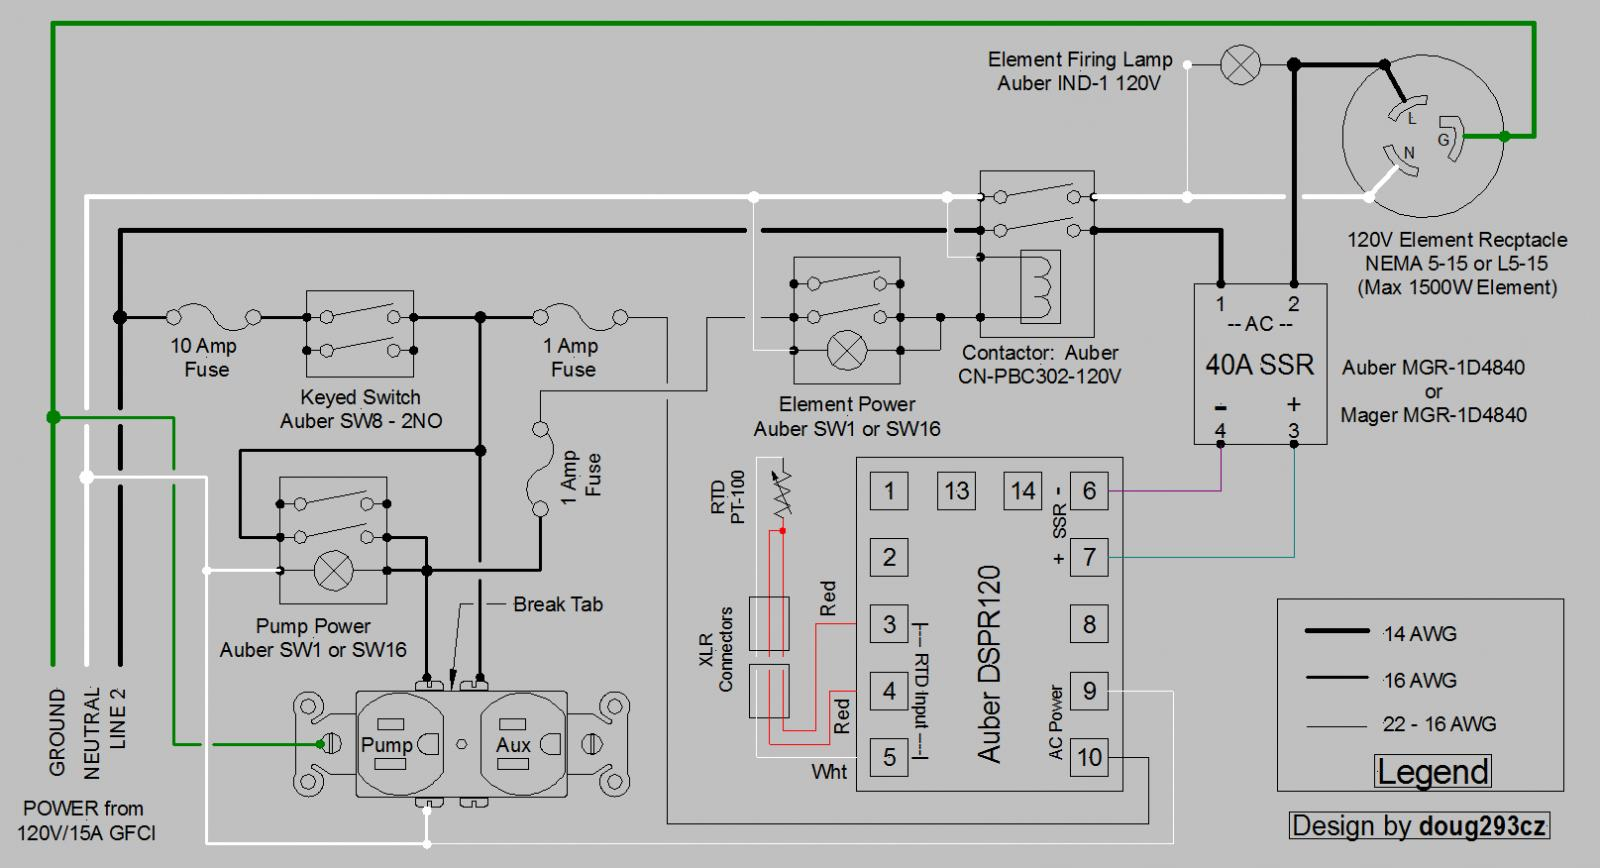 Ssr Wiring Diagram For Controller Will Be A Thing Washing Machine Door Interlock Amazing Pid 110v Switch Ideas Best Image 2013 Pilot Radio Maf